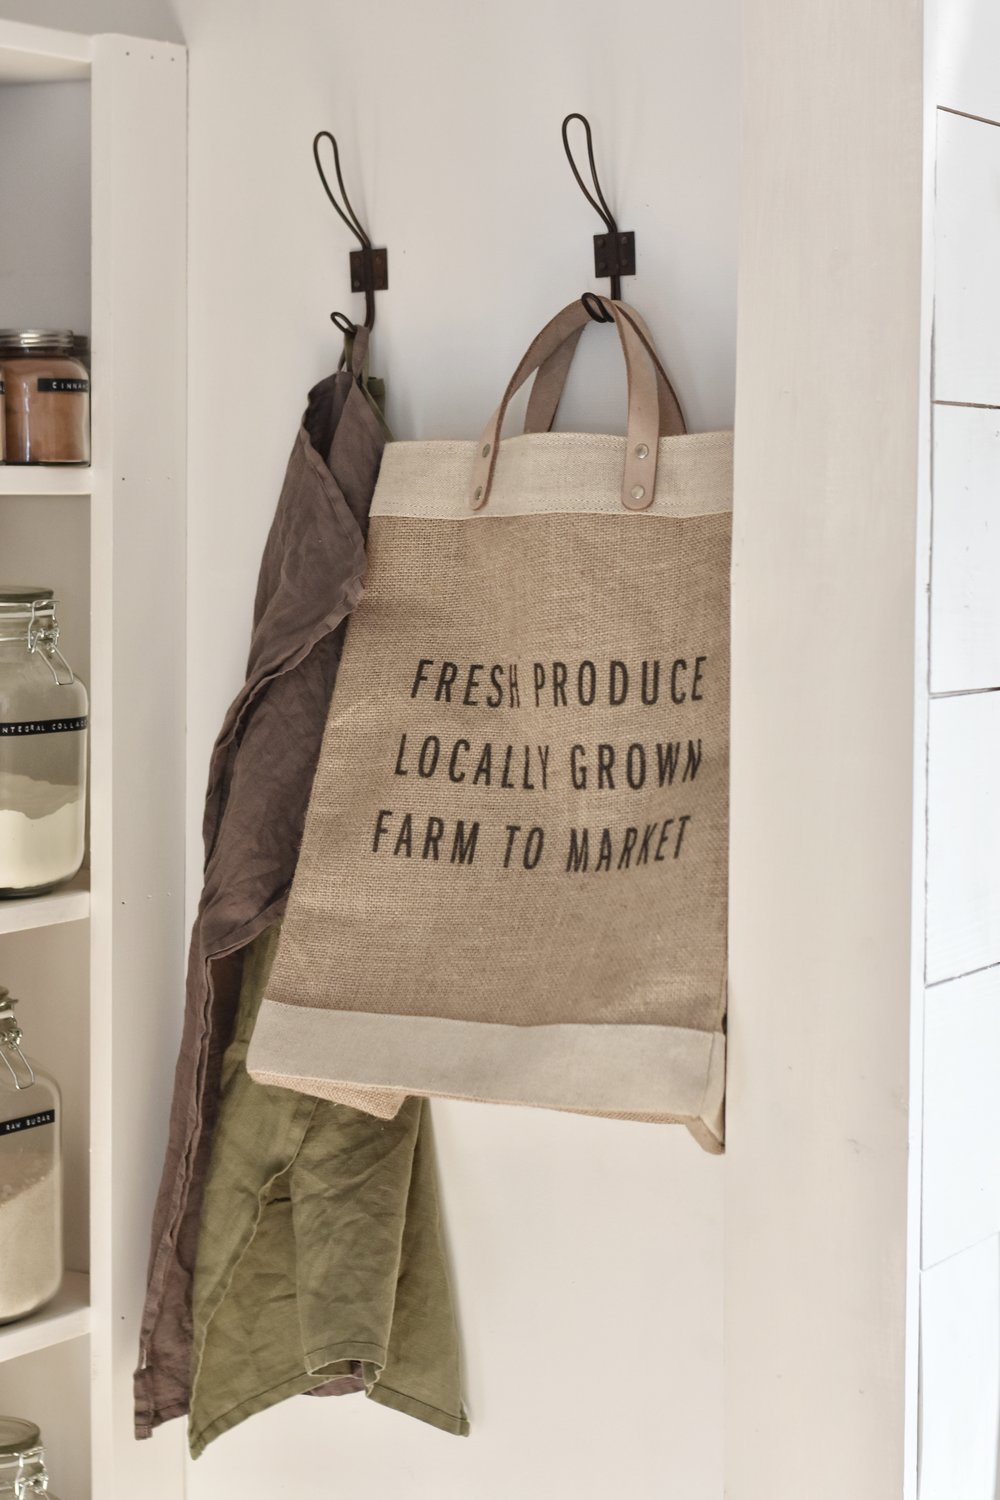 market bag - always an eye catcher at the local farmers market or grocery store. this market bag is lined and holds a lot! you can customize them making them unique!